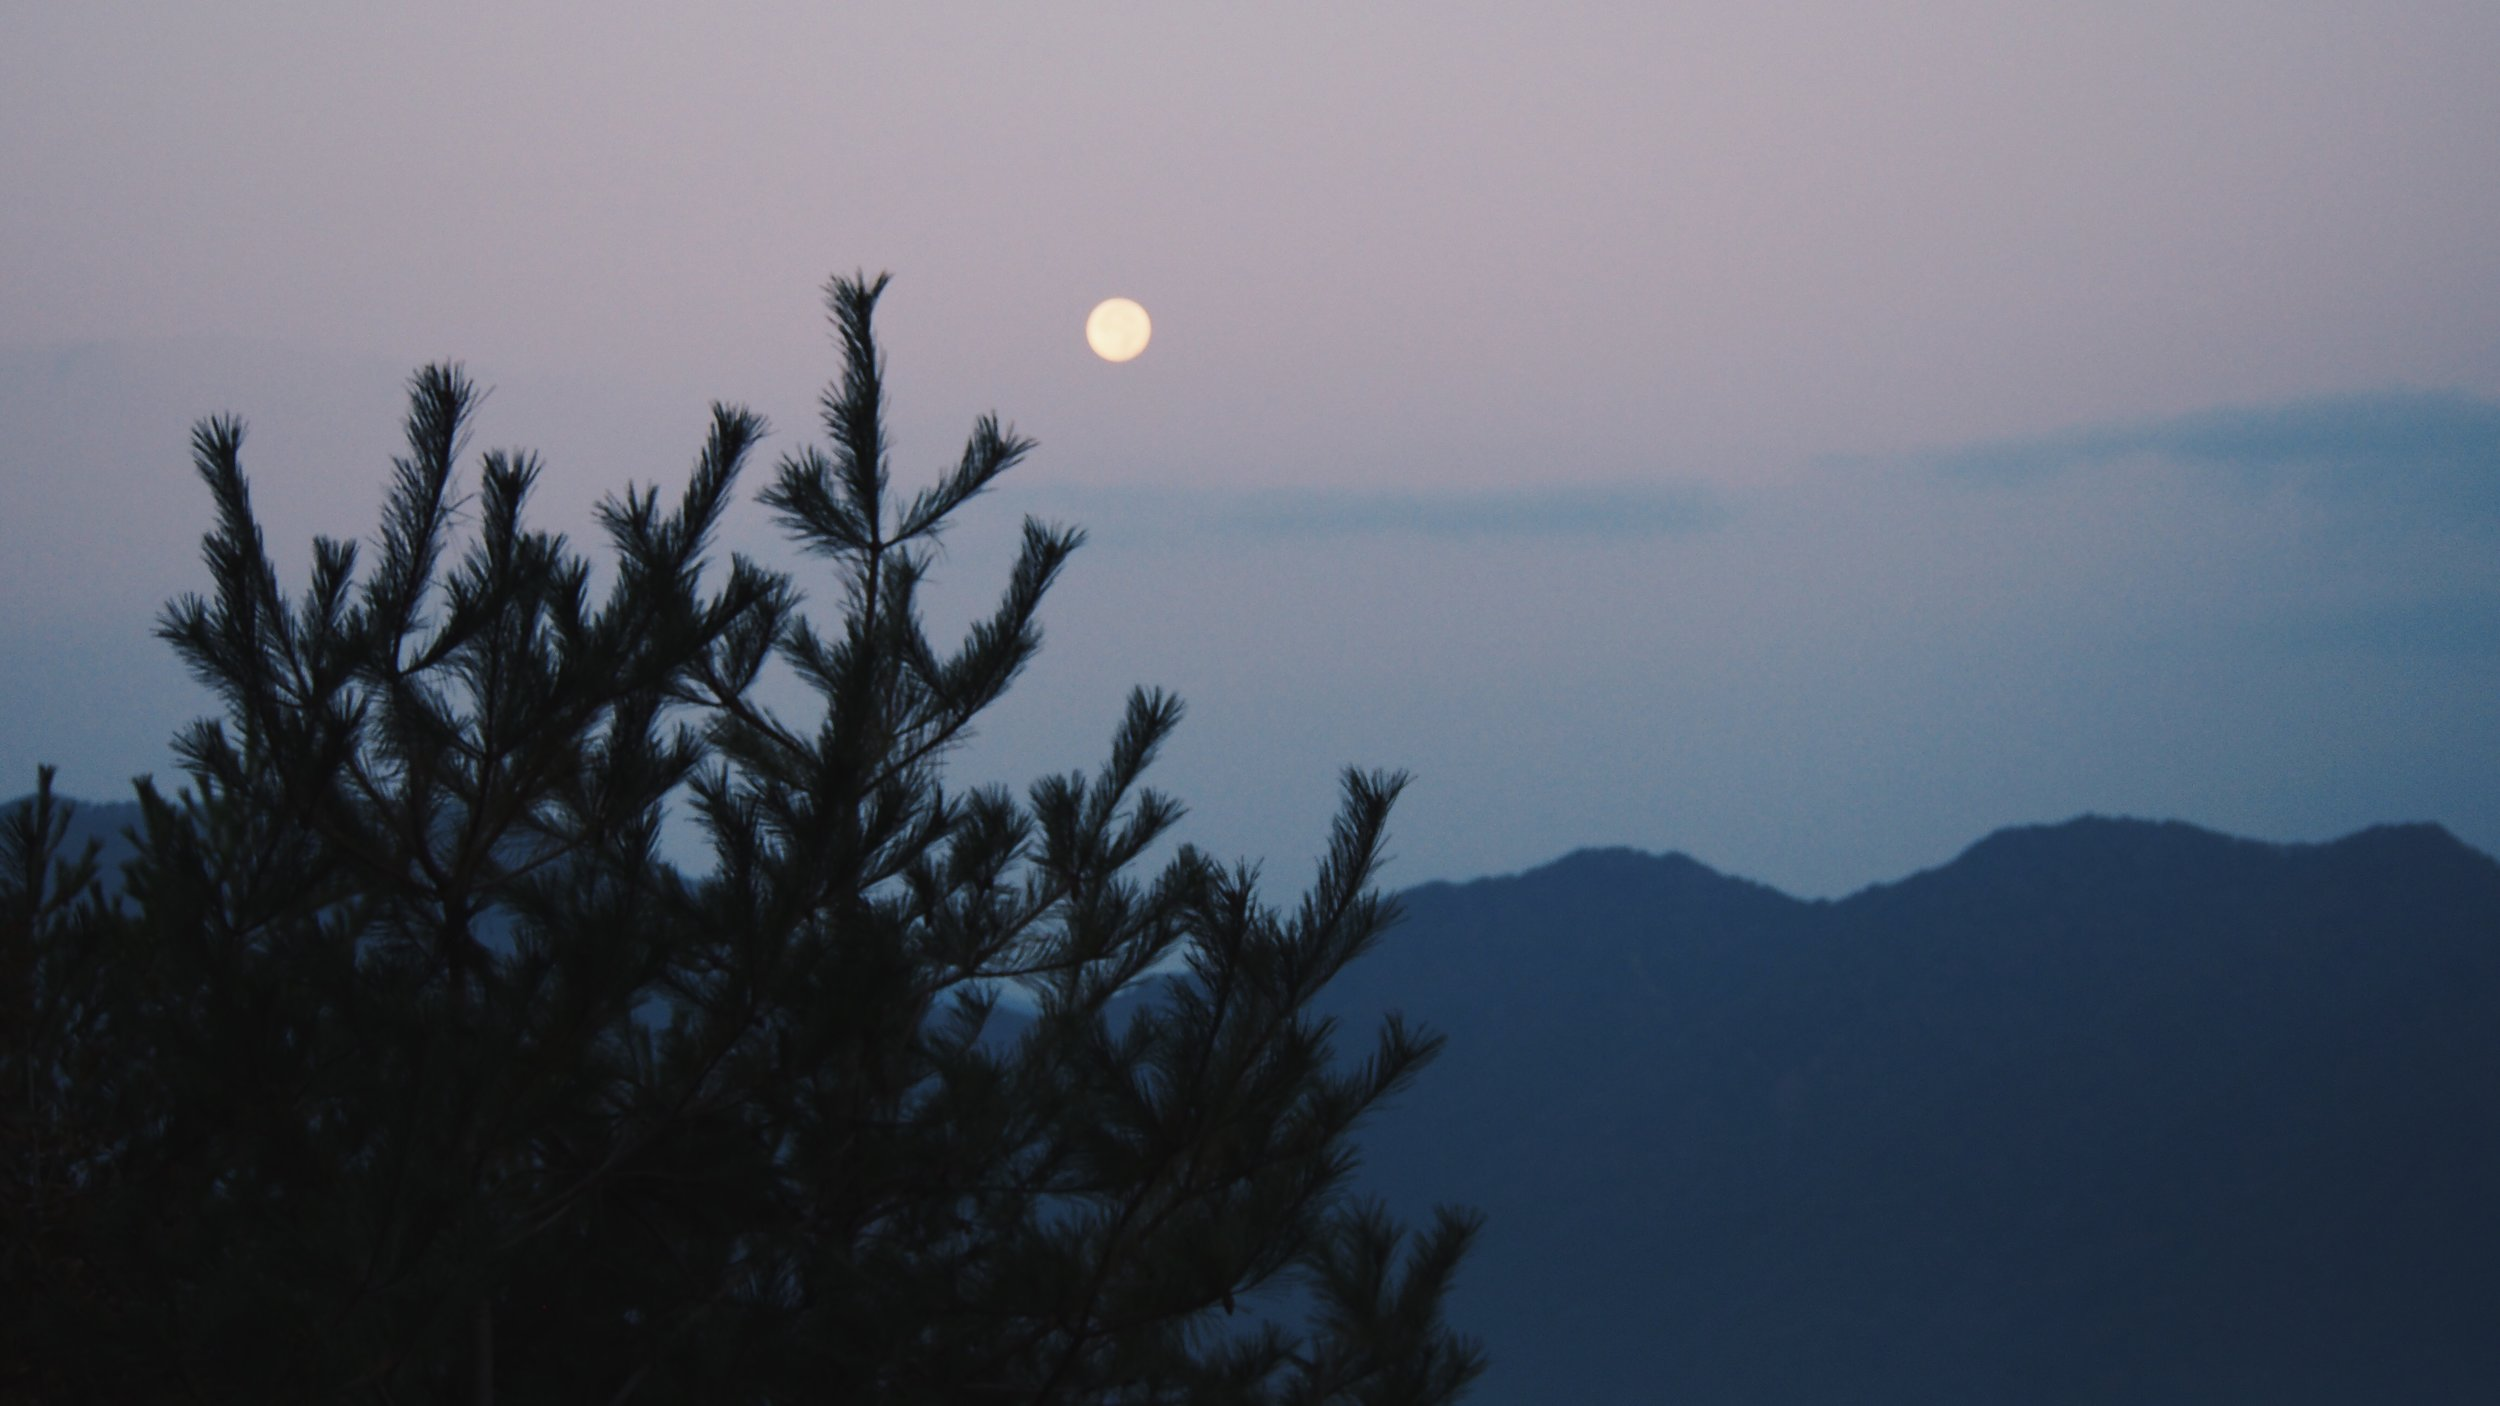 The moon in the morning sunrise